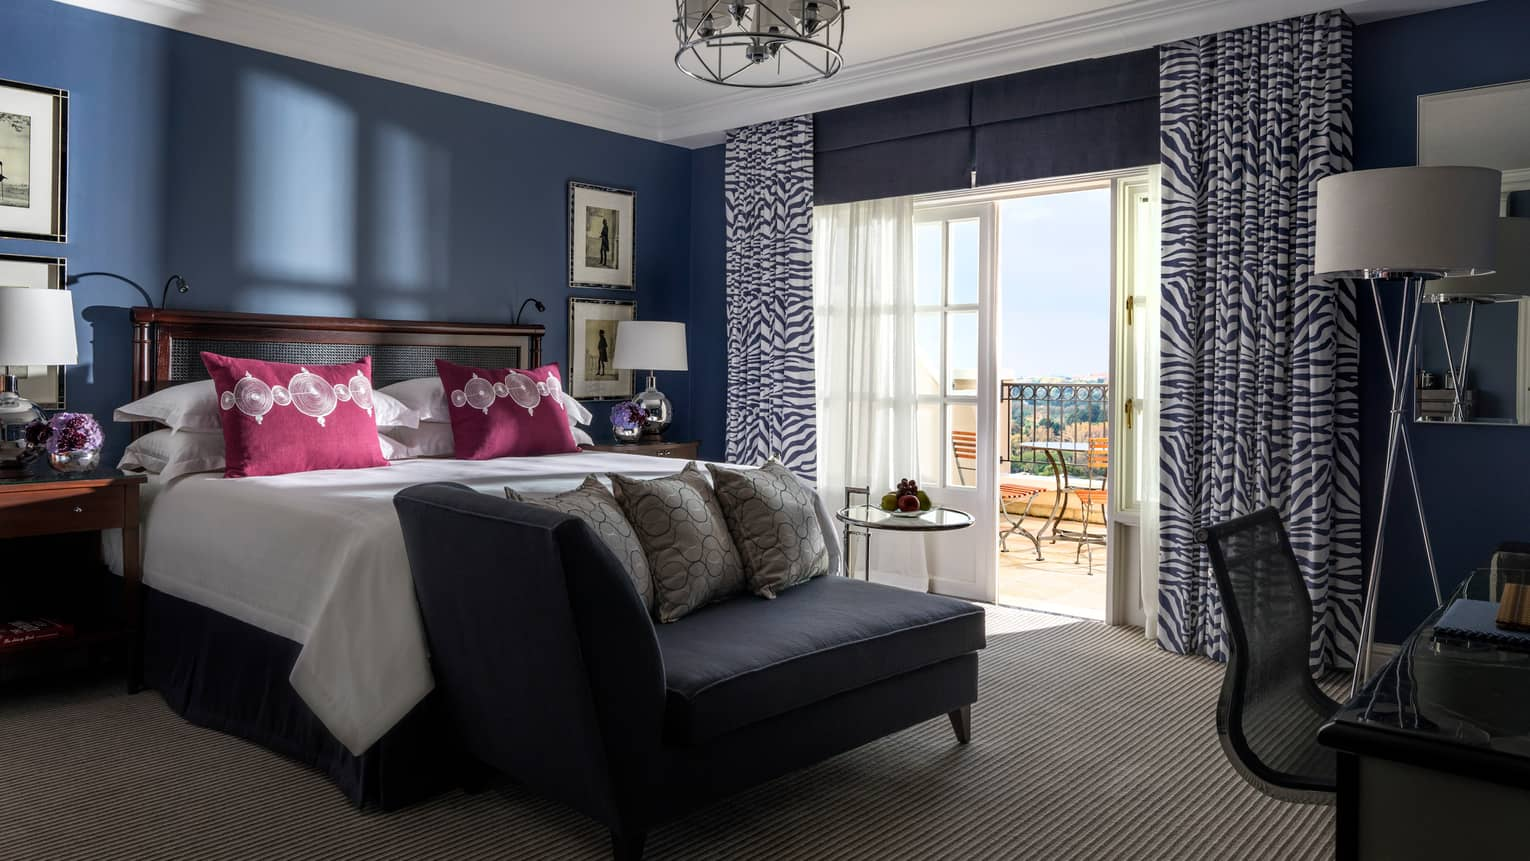 Hotel room with navy walls, white bed and magenta pillows, black settee at foot, zebra curtains by french doors